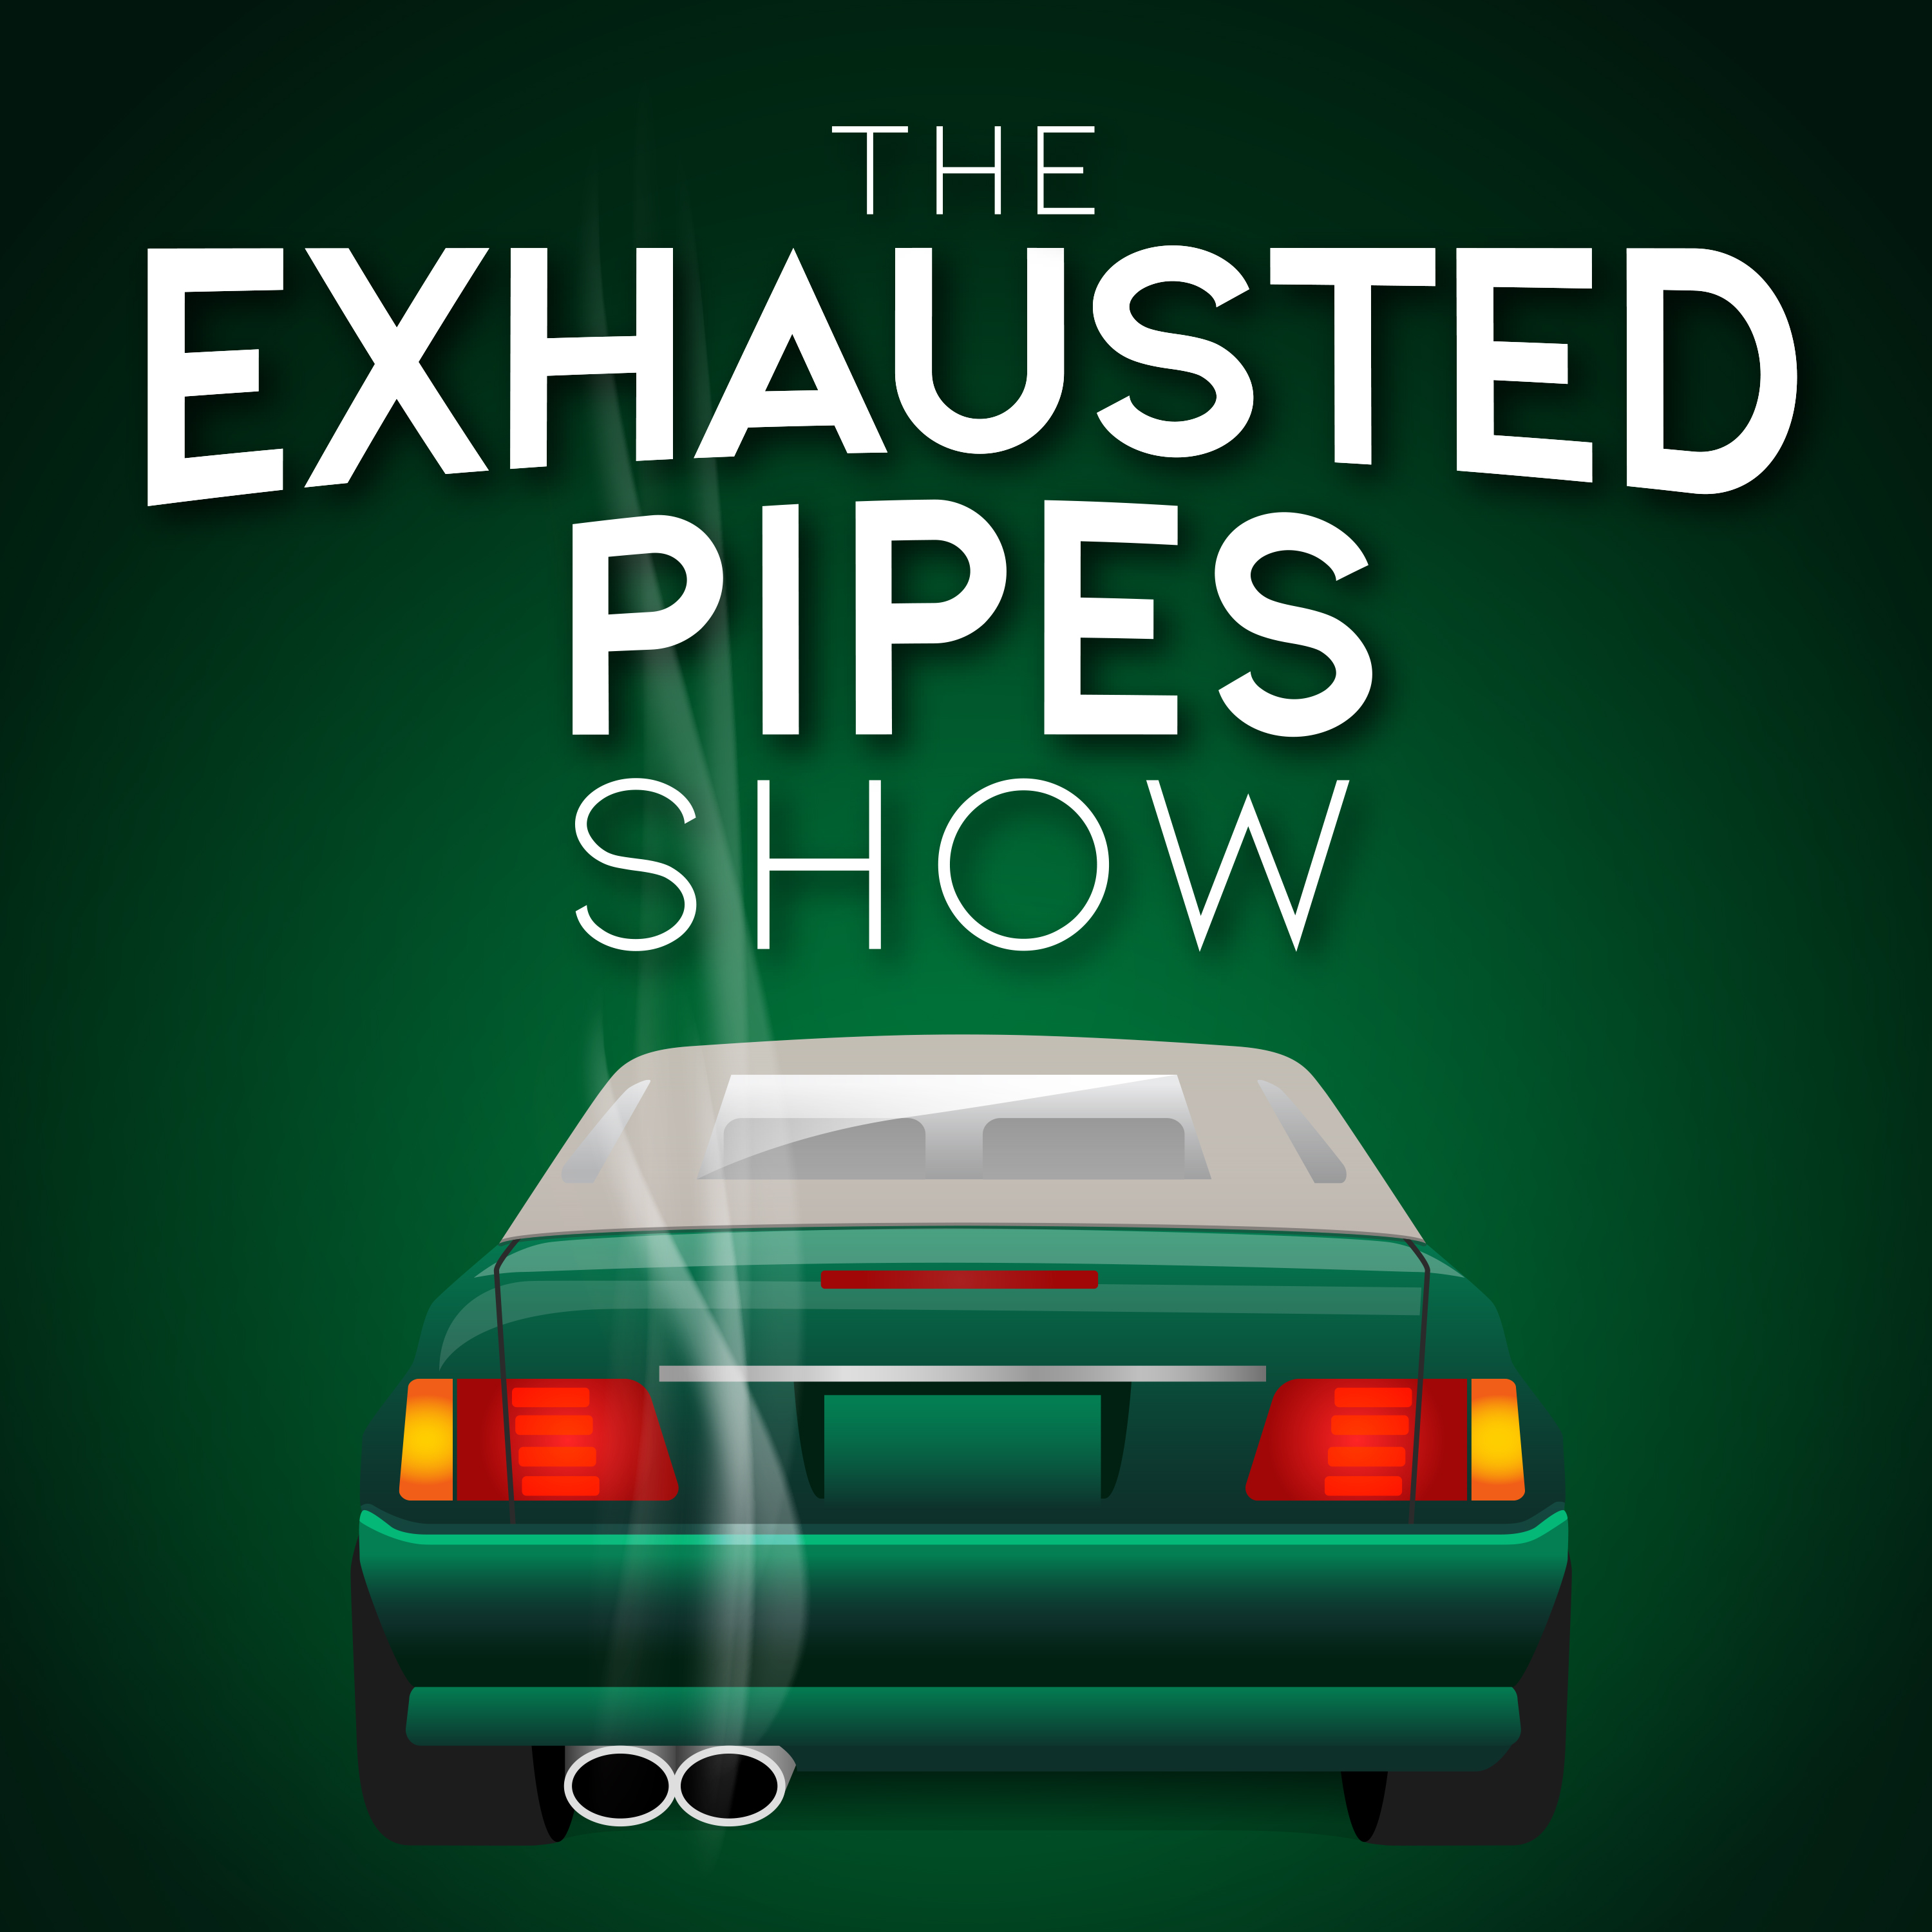 The Exhausted Pipes Show